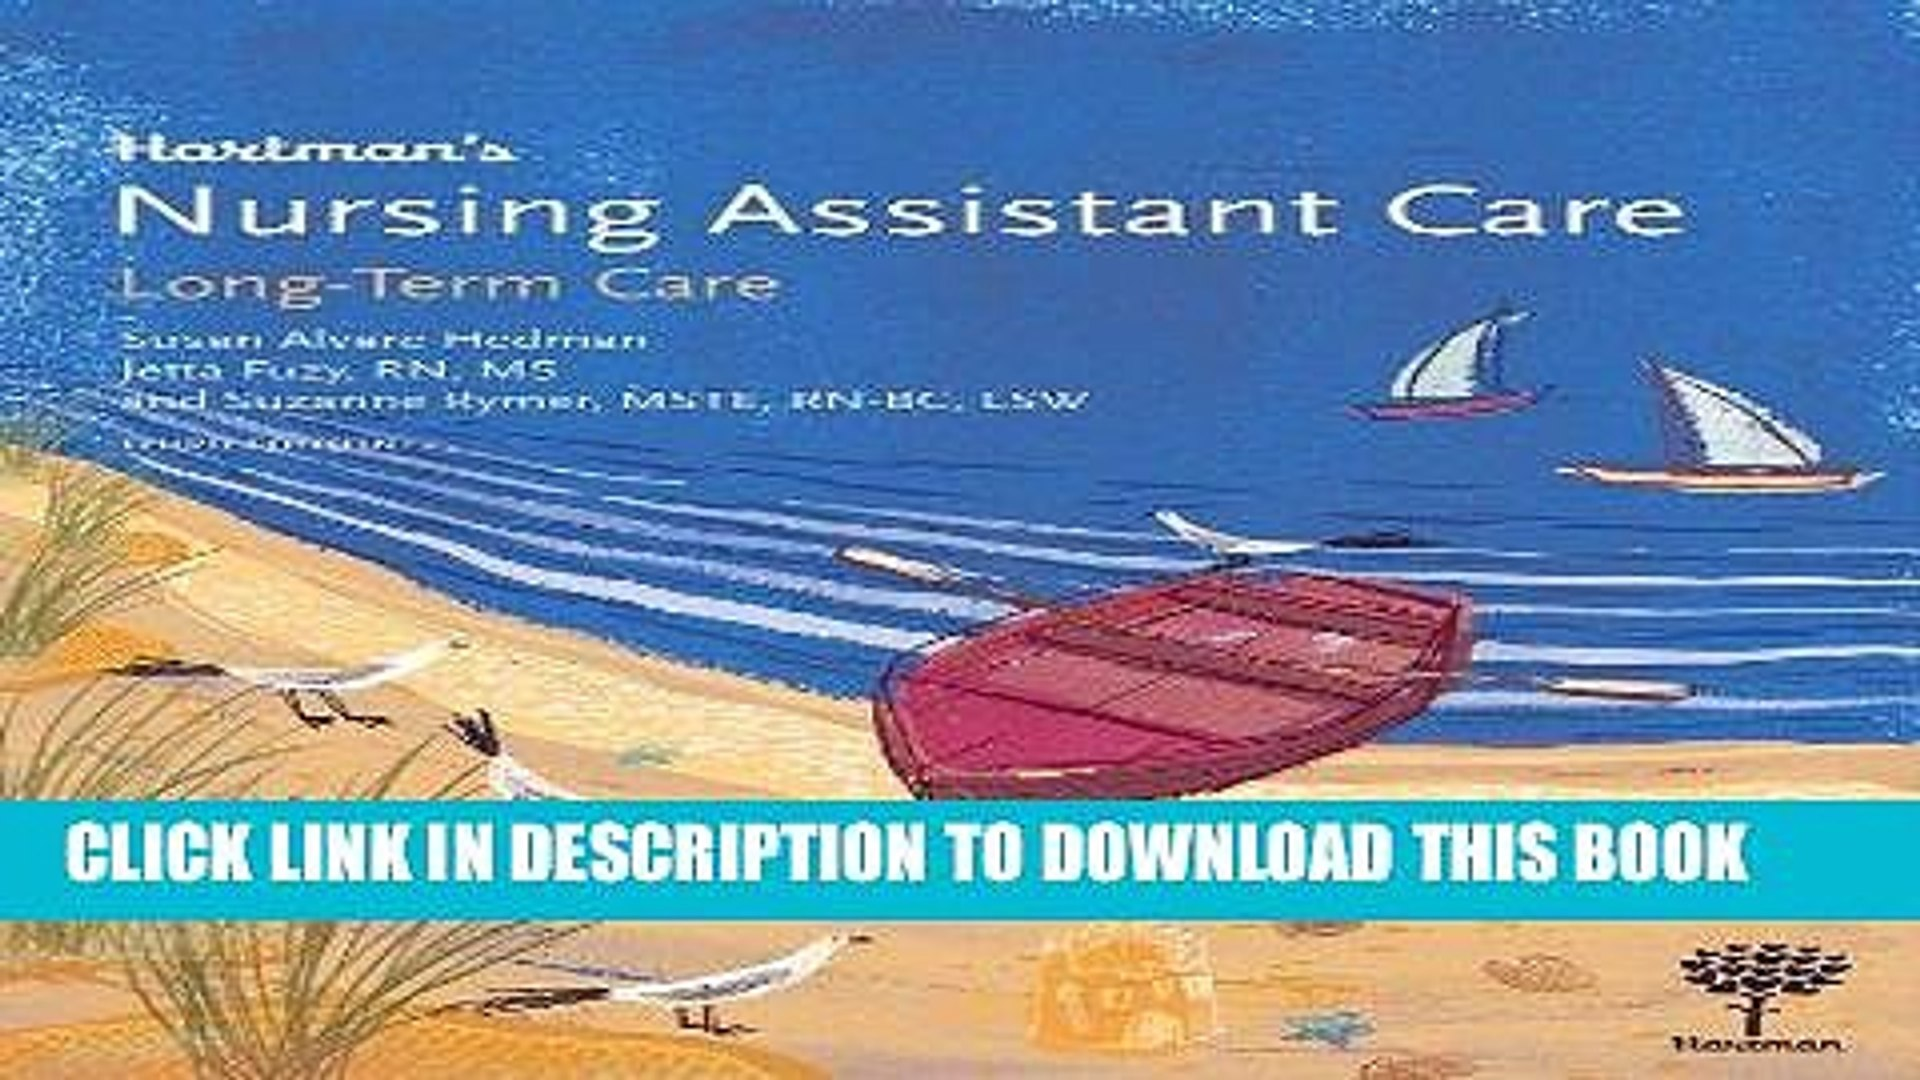 [FREE] EBOOK Hartman s Nursing Assistant Care: Long-Term Care, 3e ONLINE COLLECTION